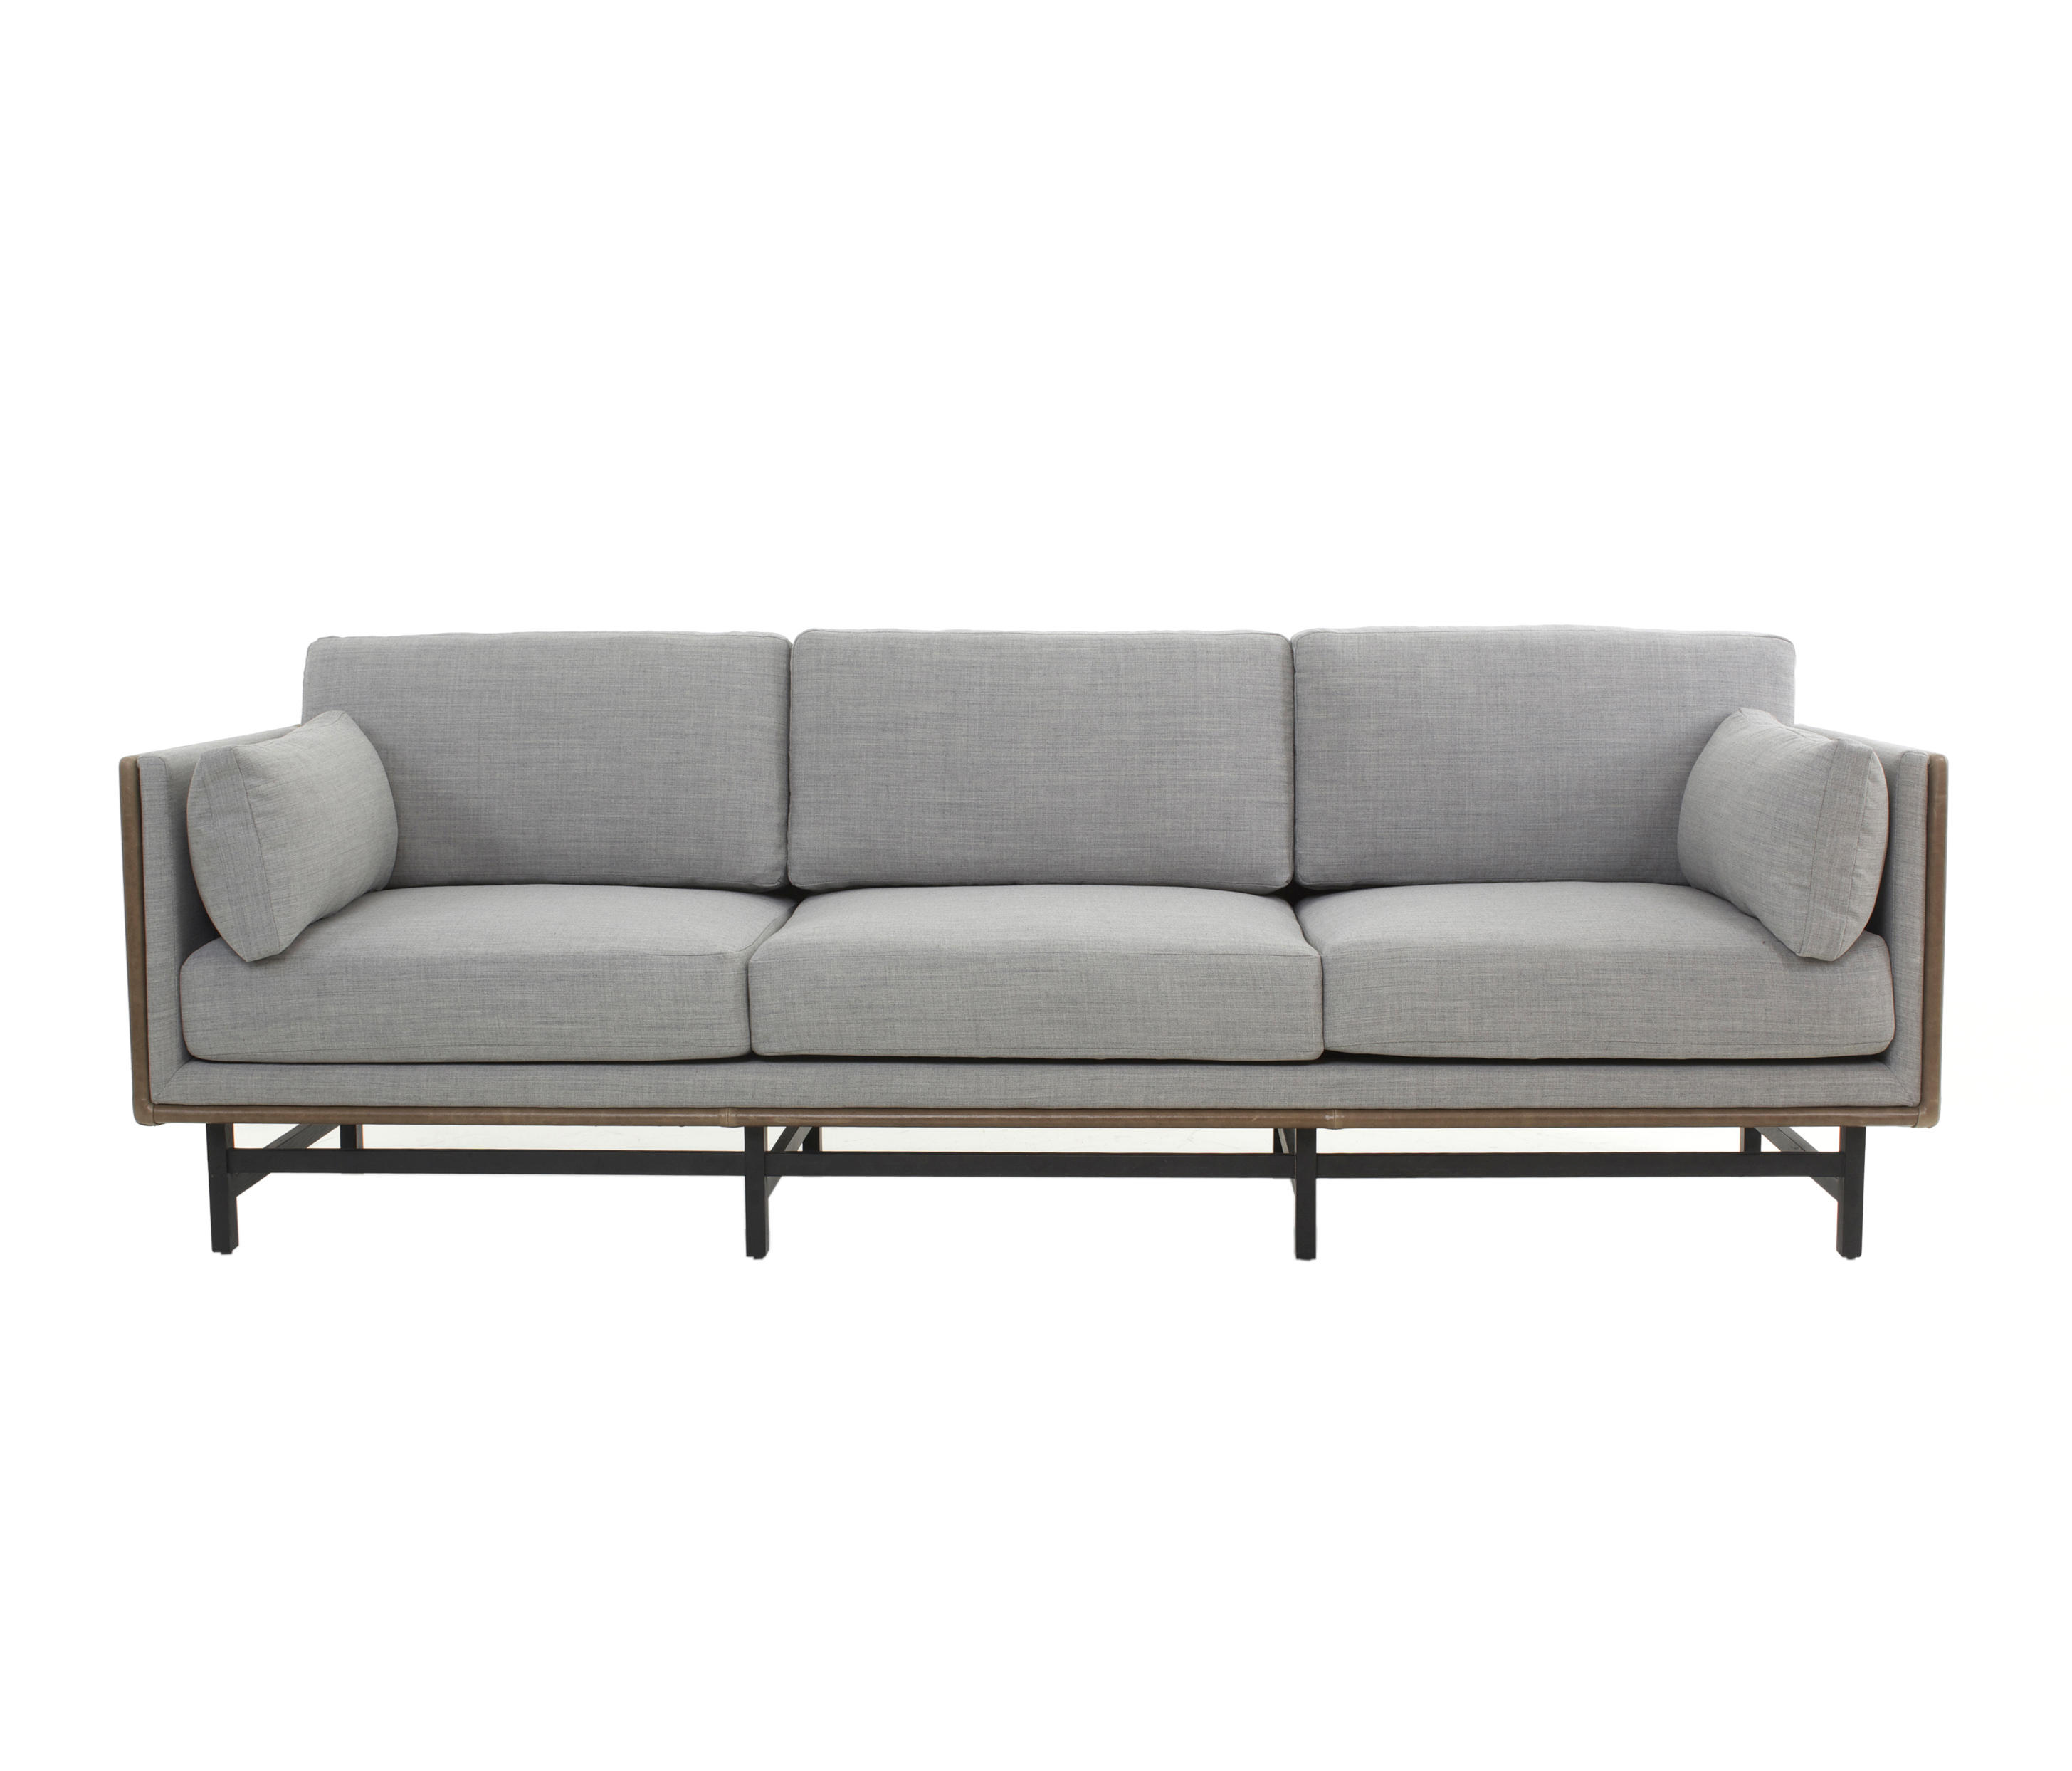 Sofa Works Reviewing The New Ikea FärlÖv Sofa Series Back To Basics TheSofa